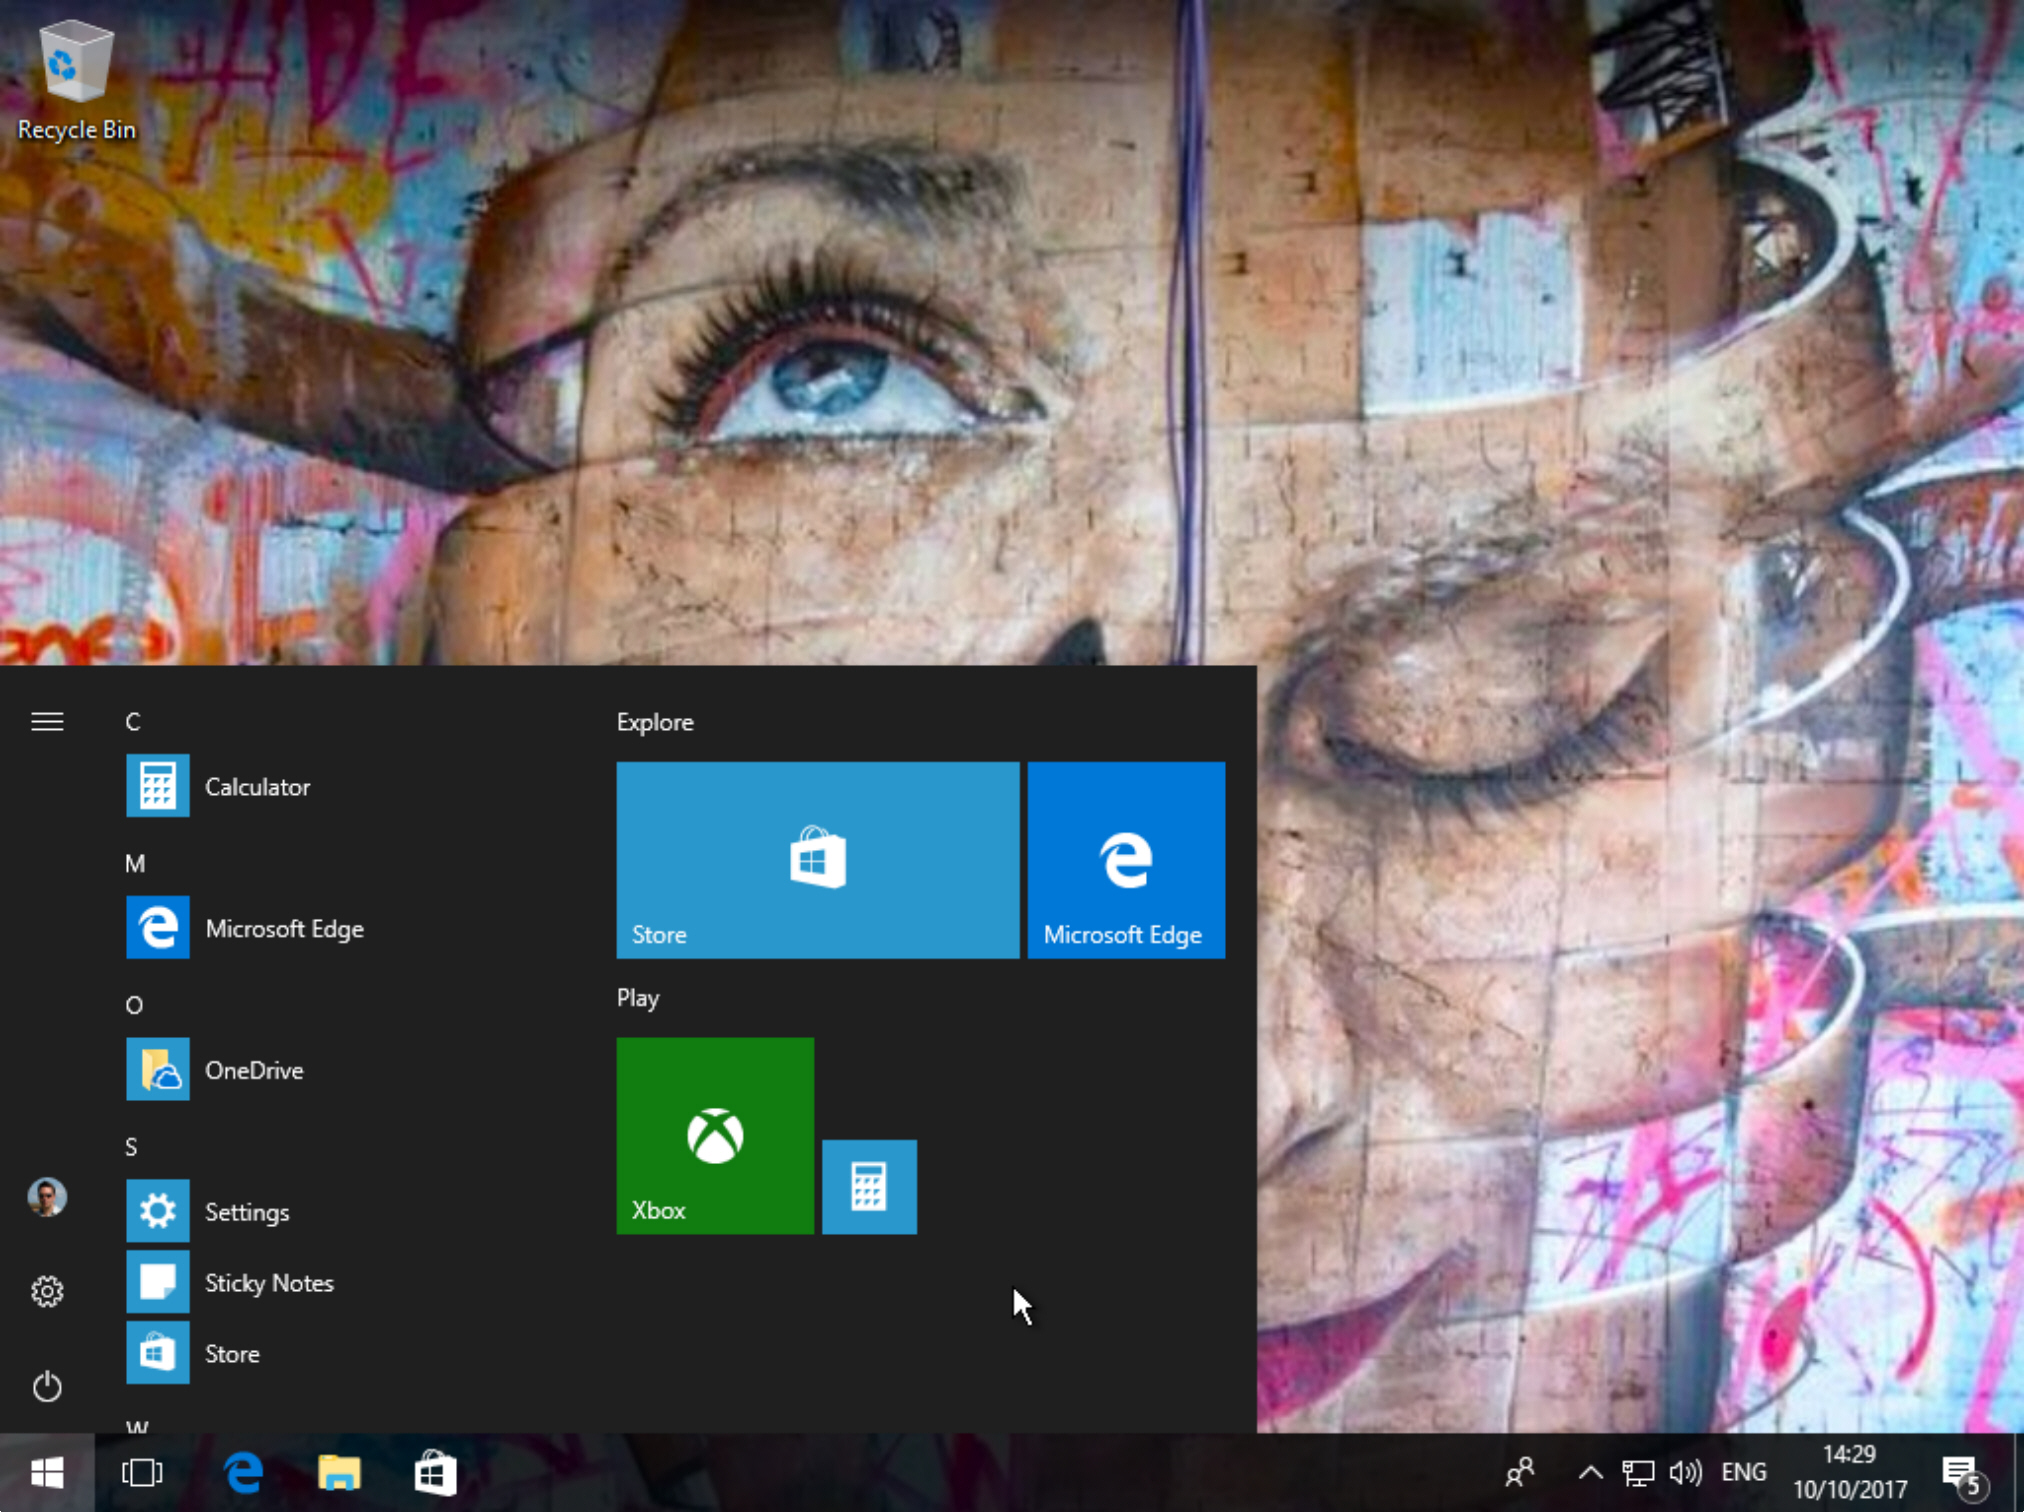 Windows 10 version 1511 is no longer supported, upgrade your PC today